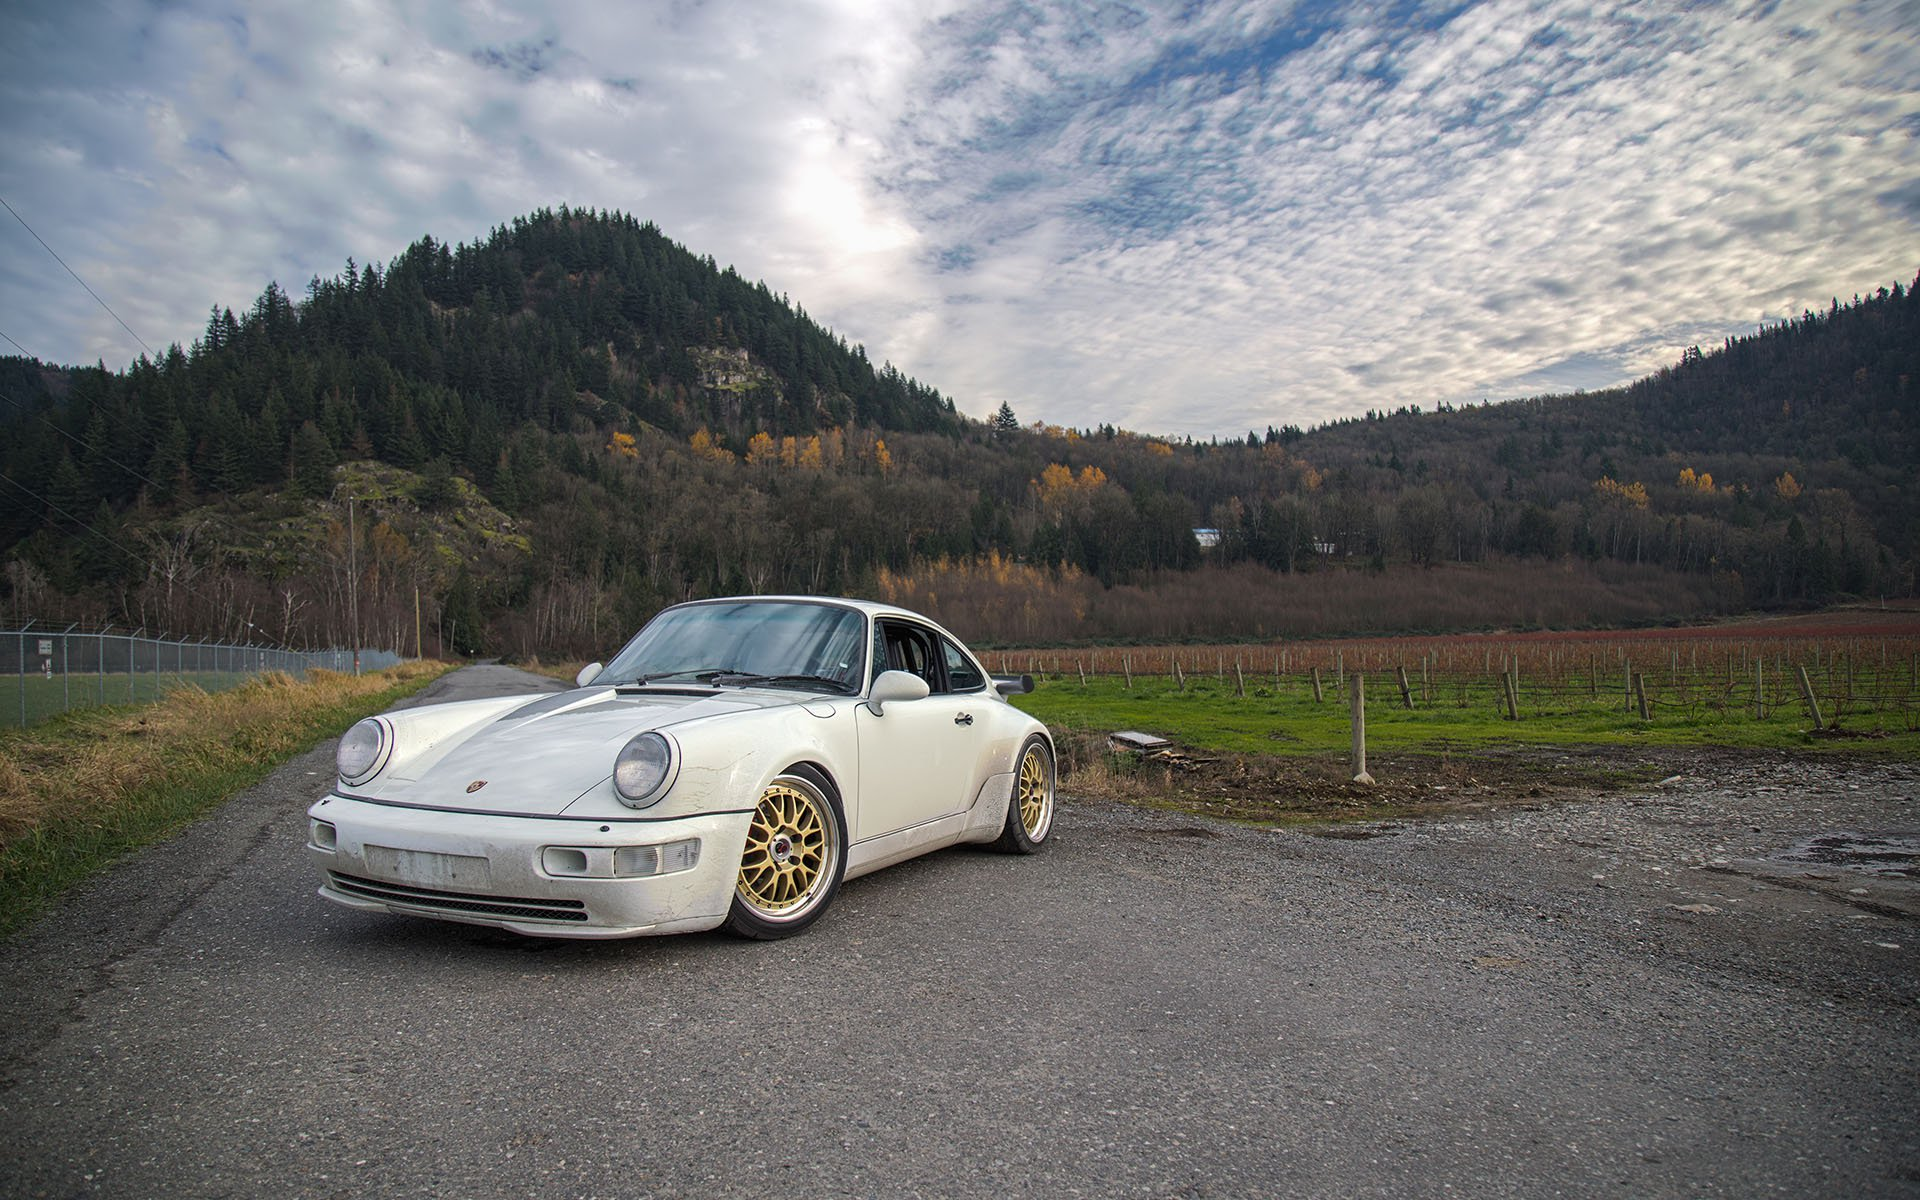 Porsche 964 Turbo Porsche Of The Month 2016 02 Turbosition